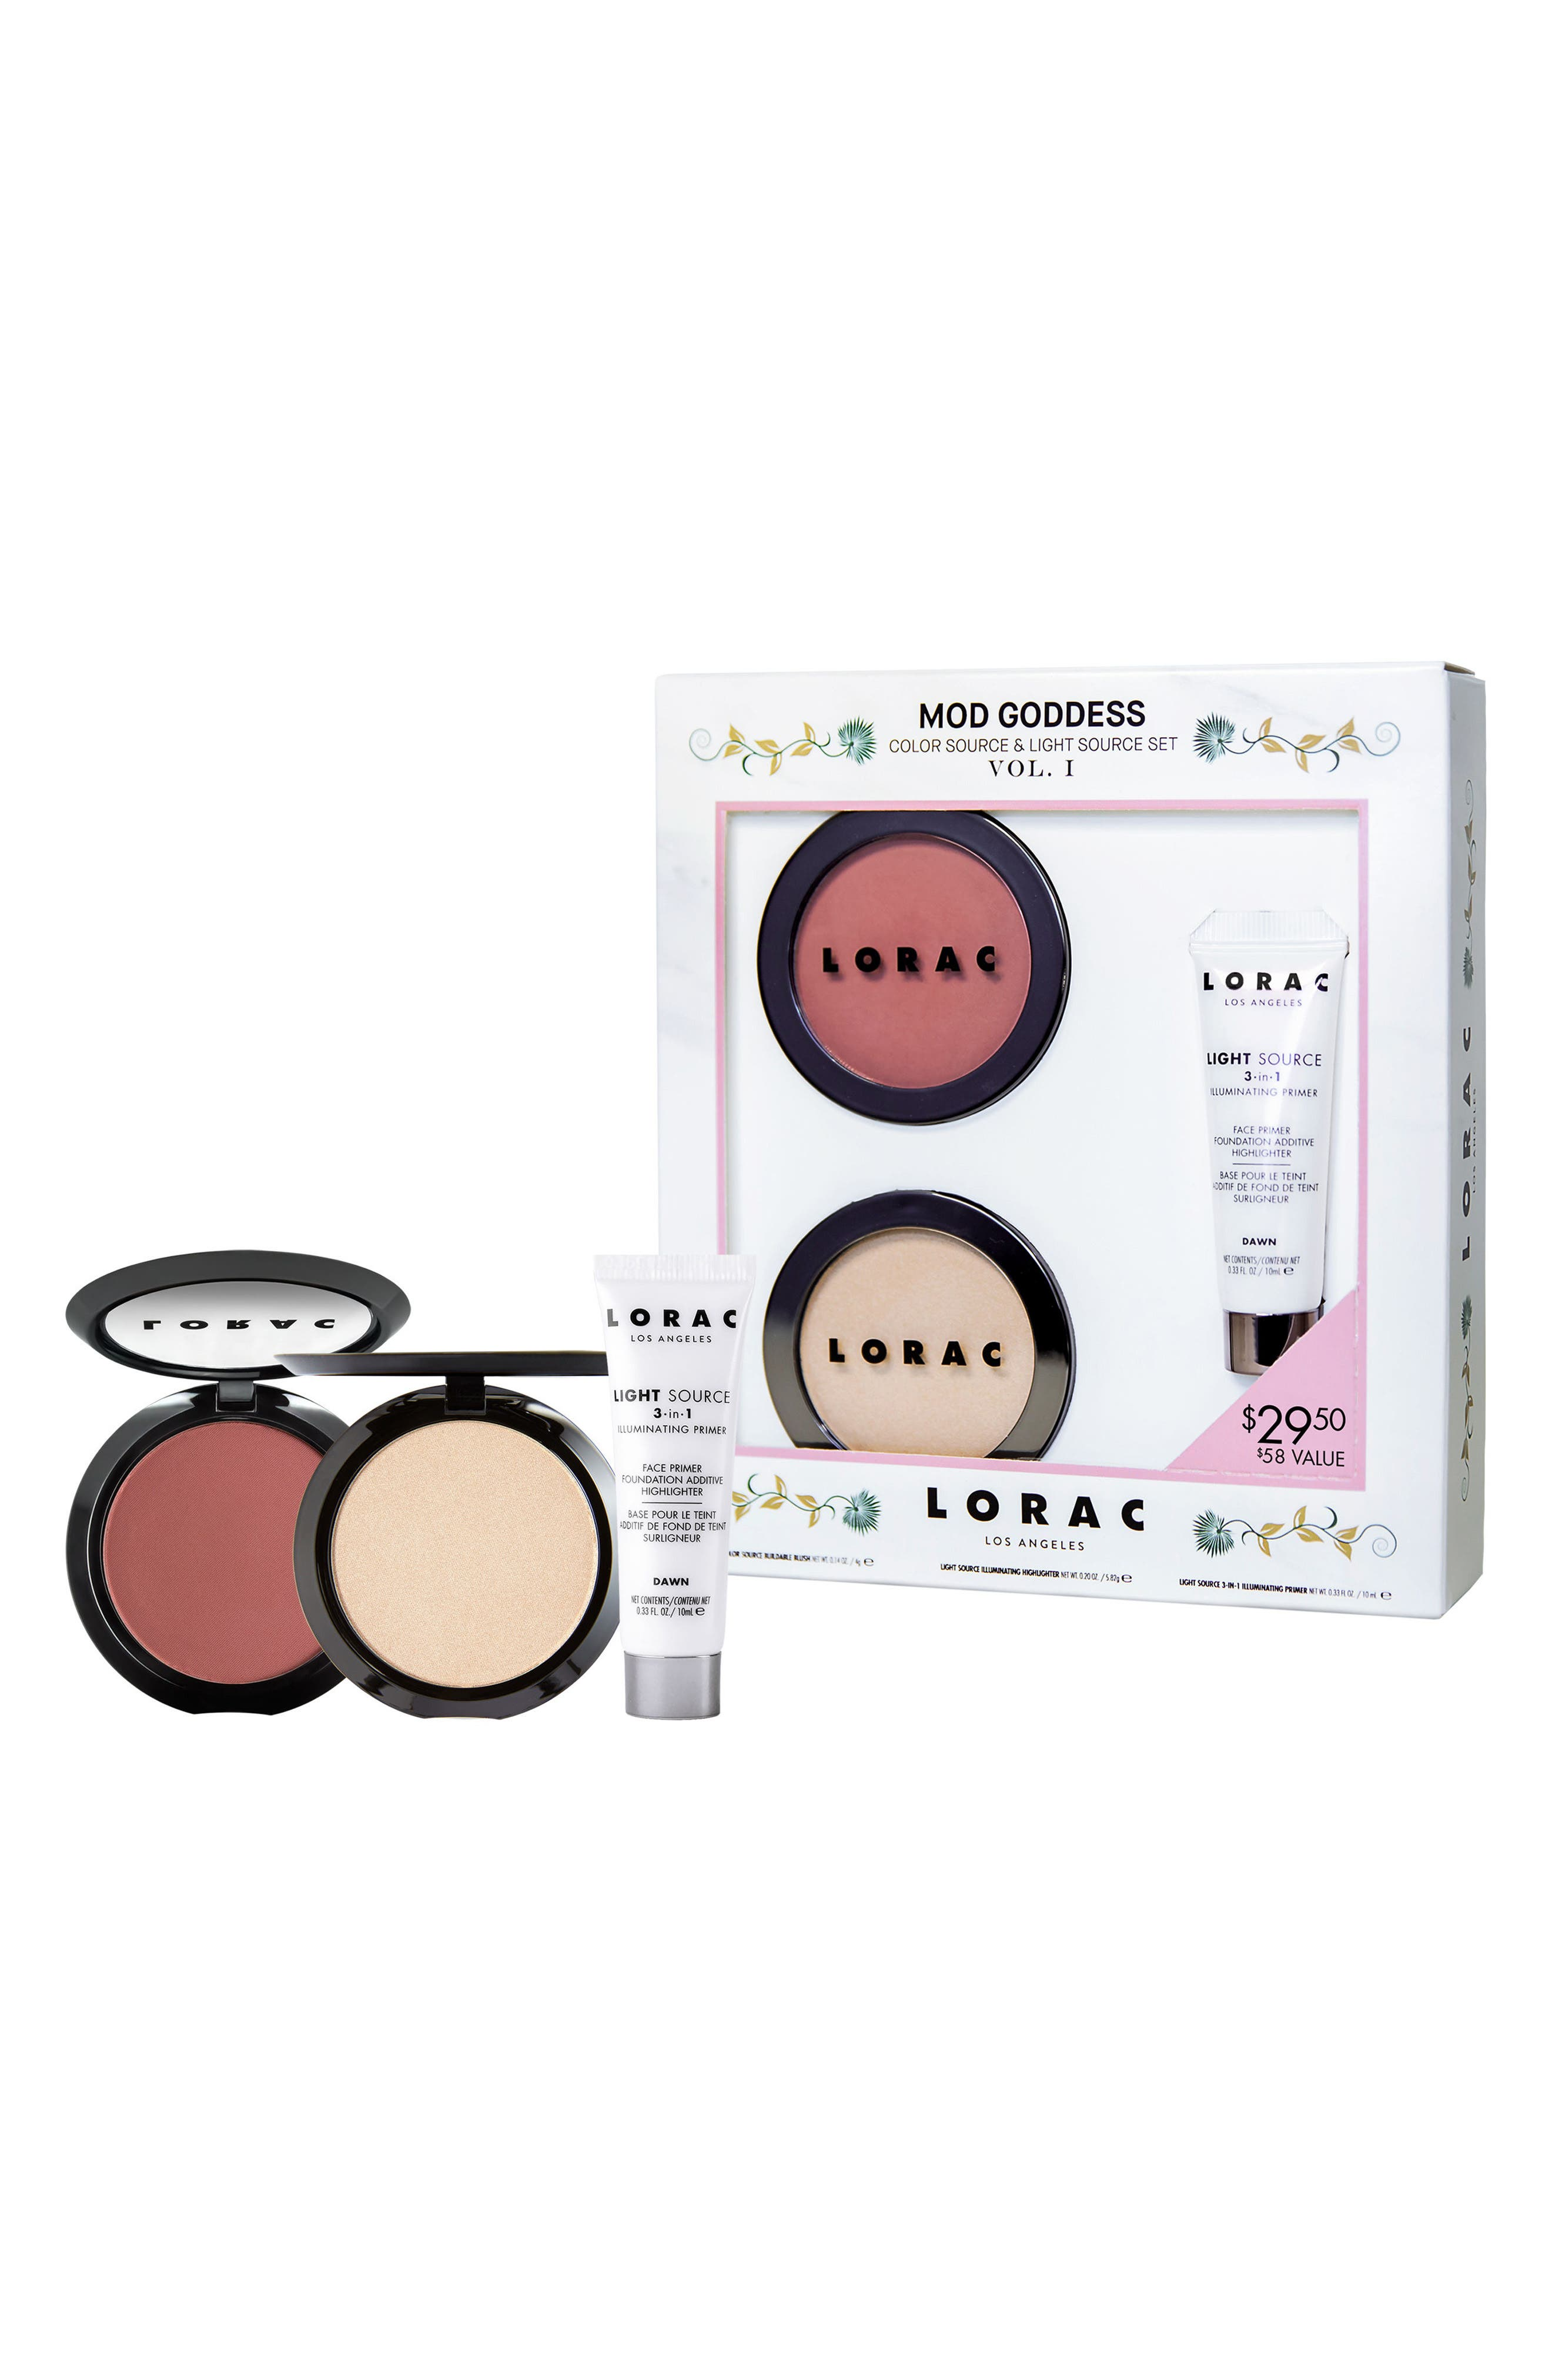 LORAC Mod Goddess Color Source & Light Set ($58 Value)